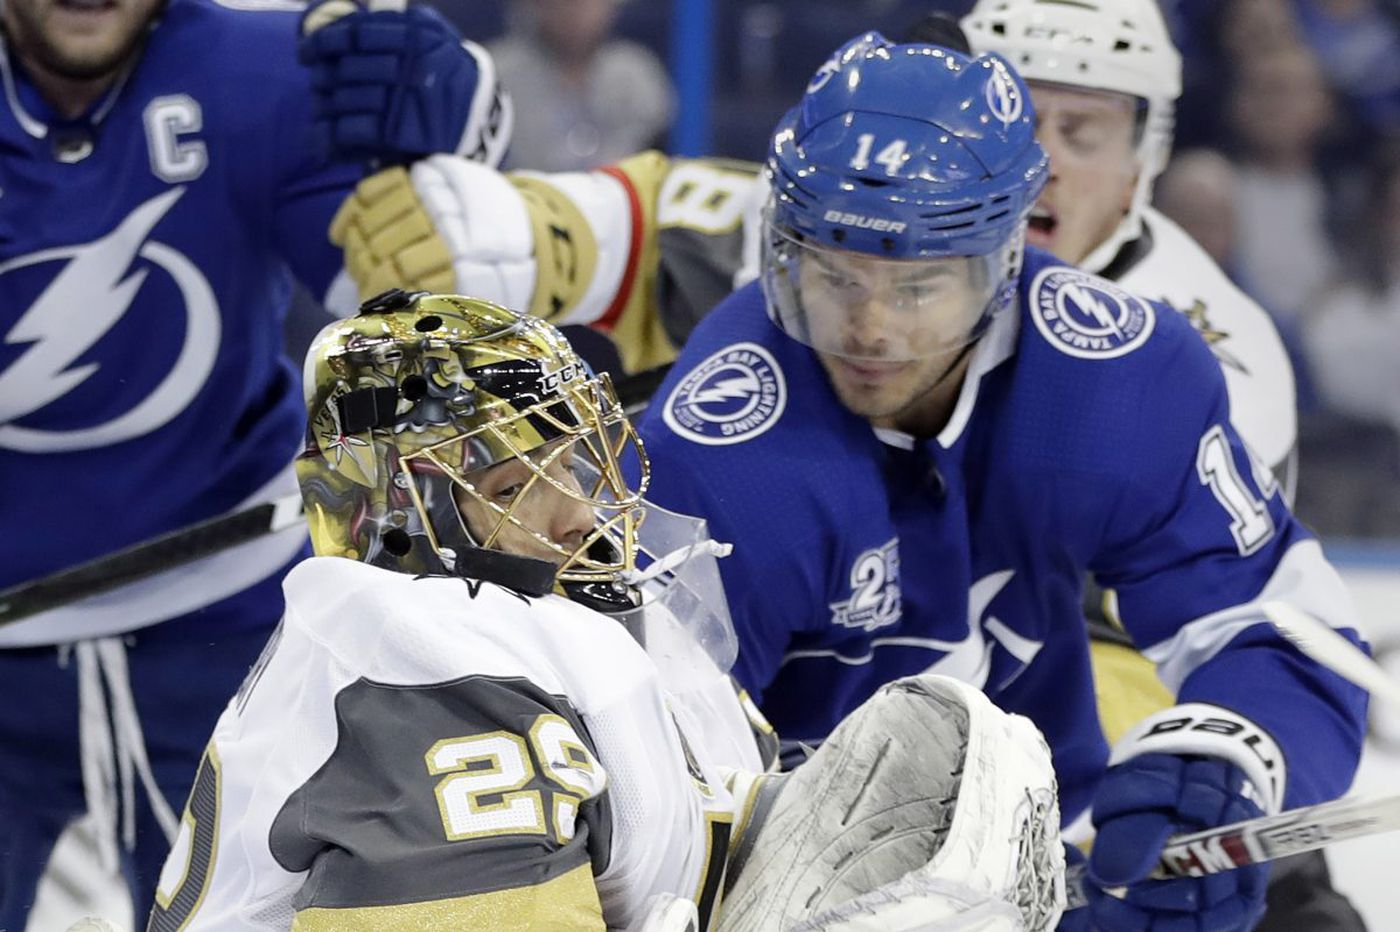 Flyers-Lightning preview: Another measuring stick